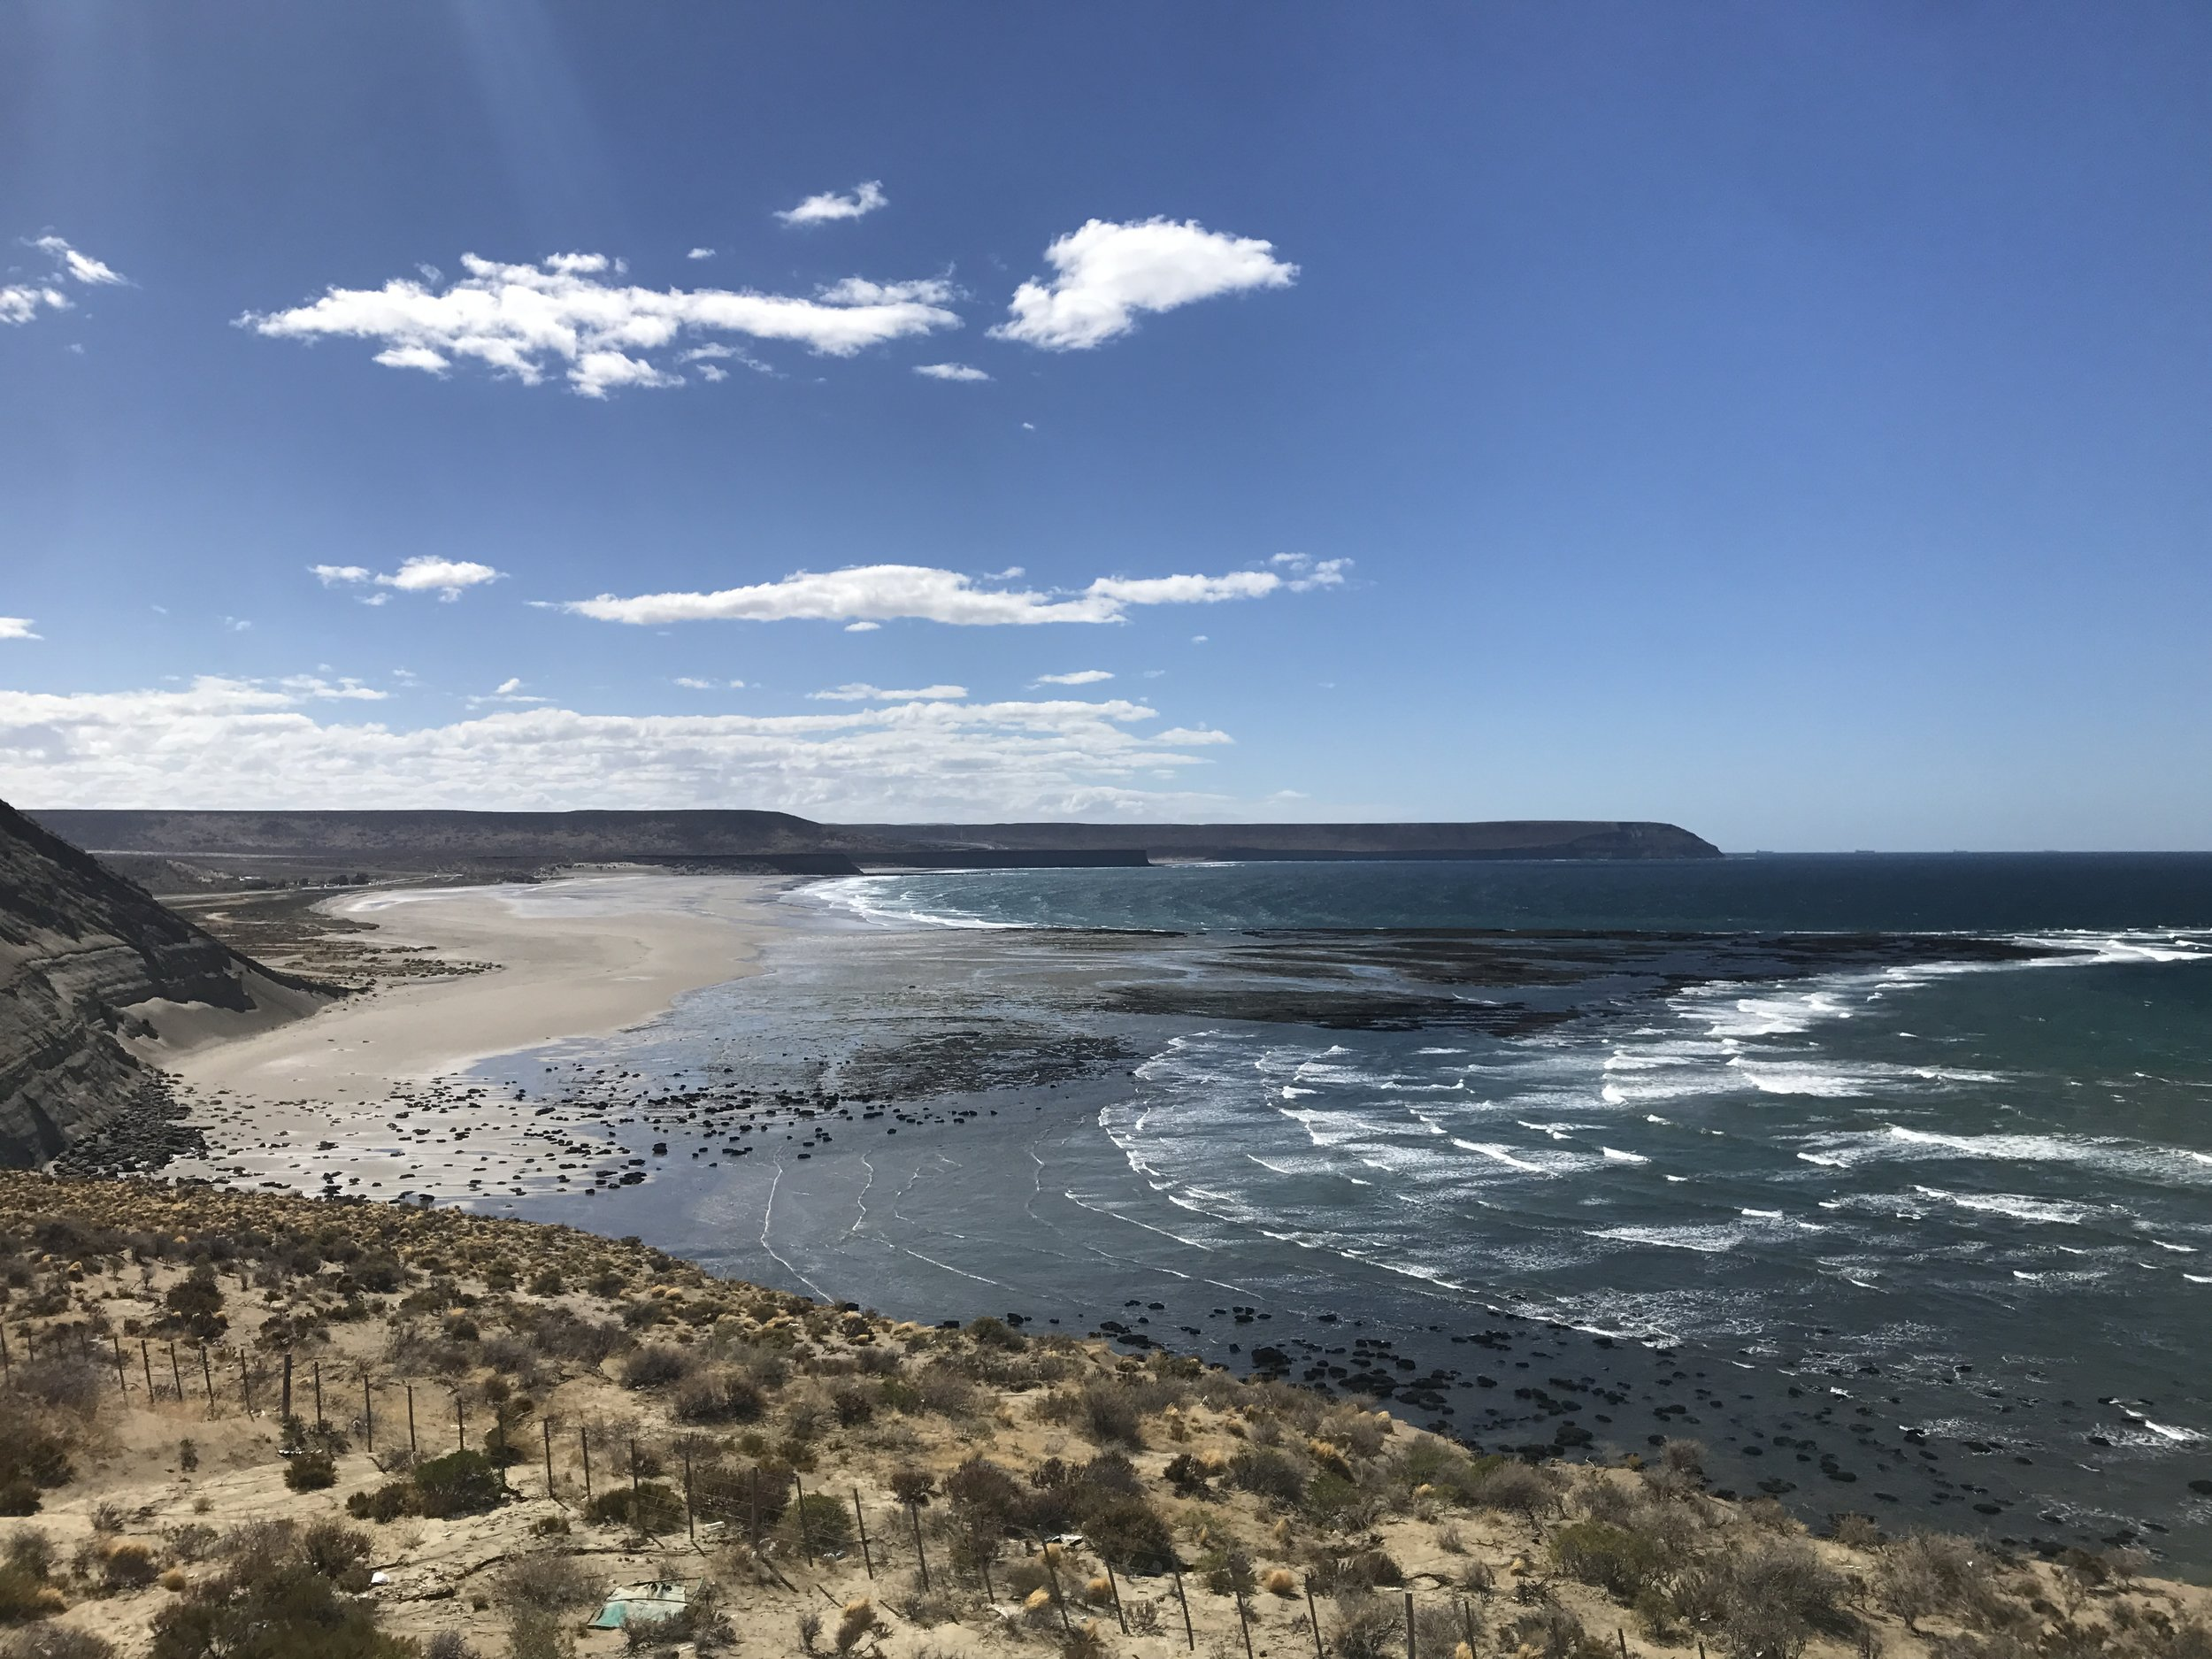 One of many isolated beaches along the Argentinean coast.